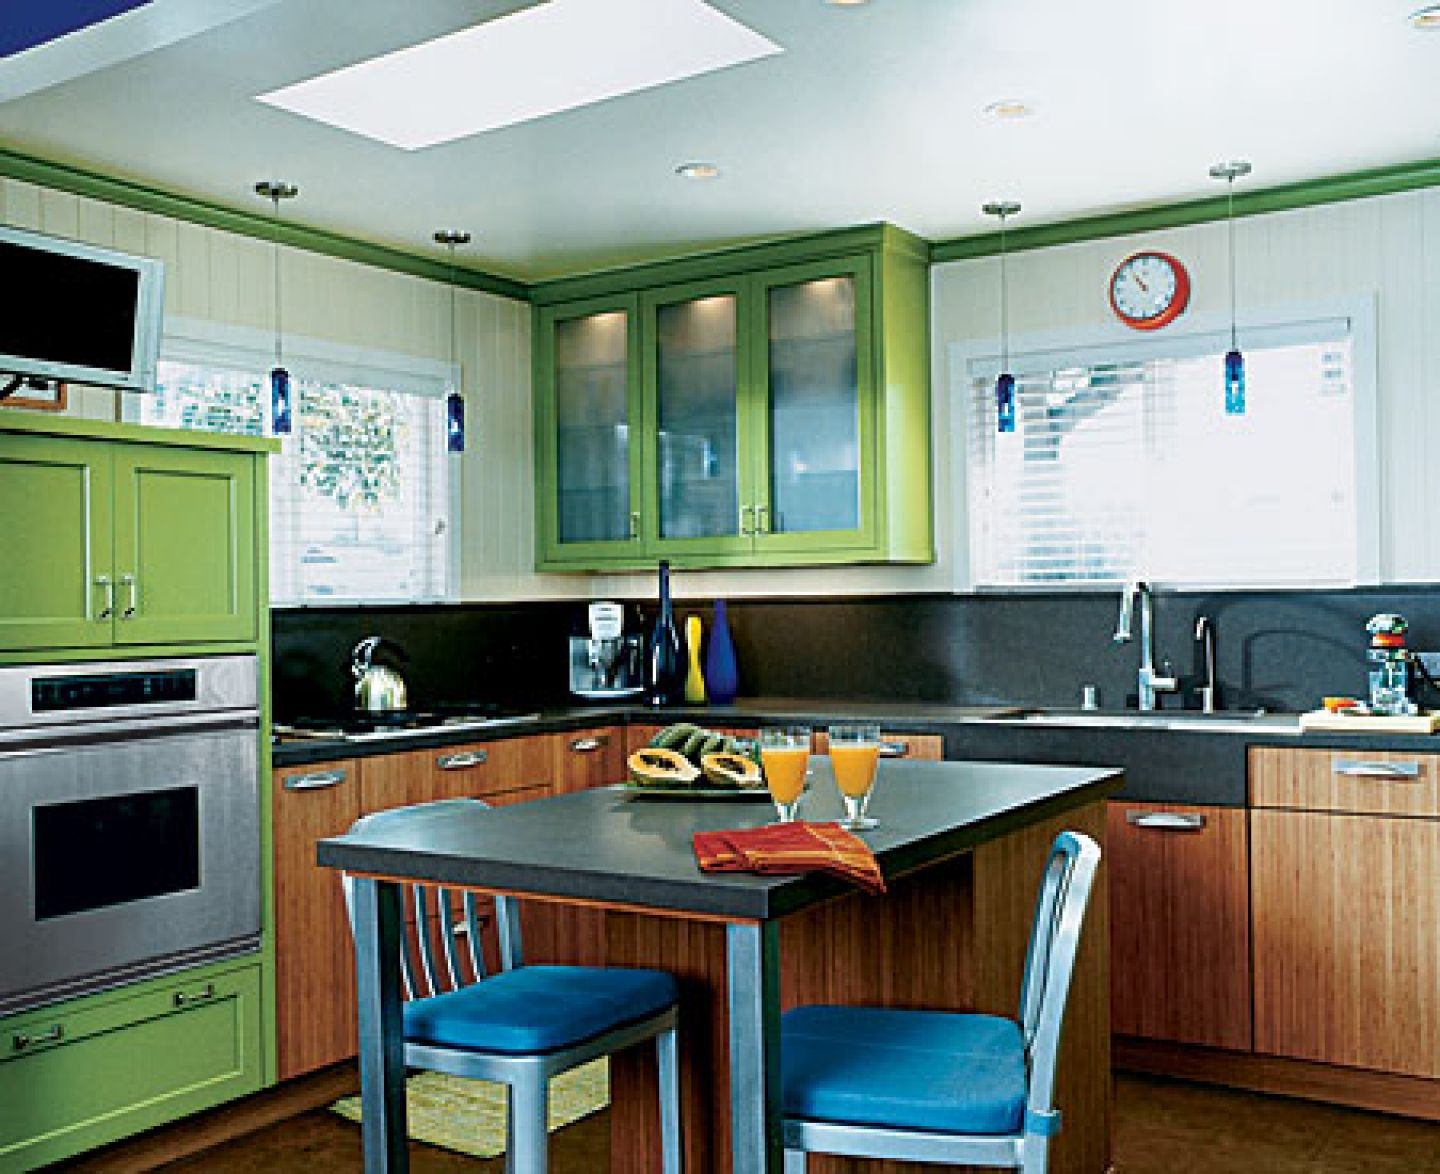 kitchens modular kitchen designs for small kitchens small kitchen